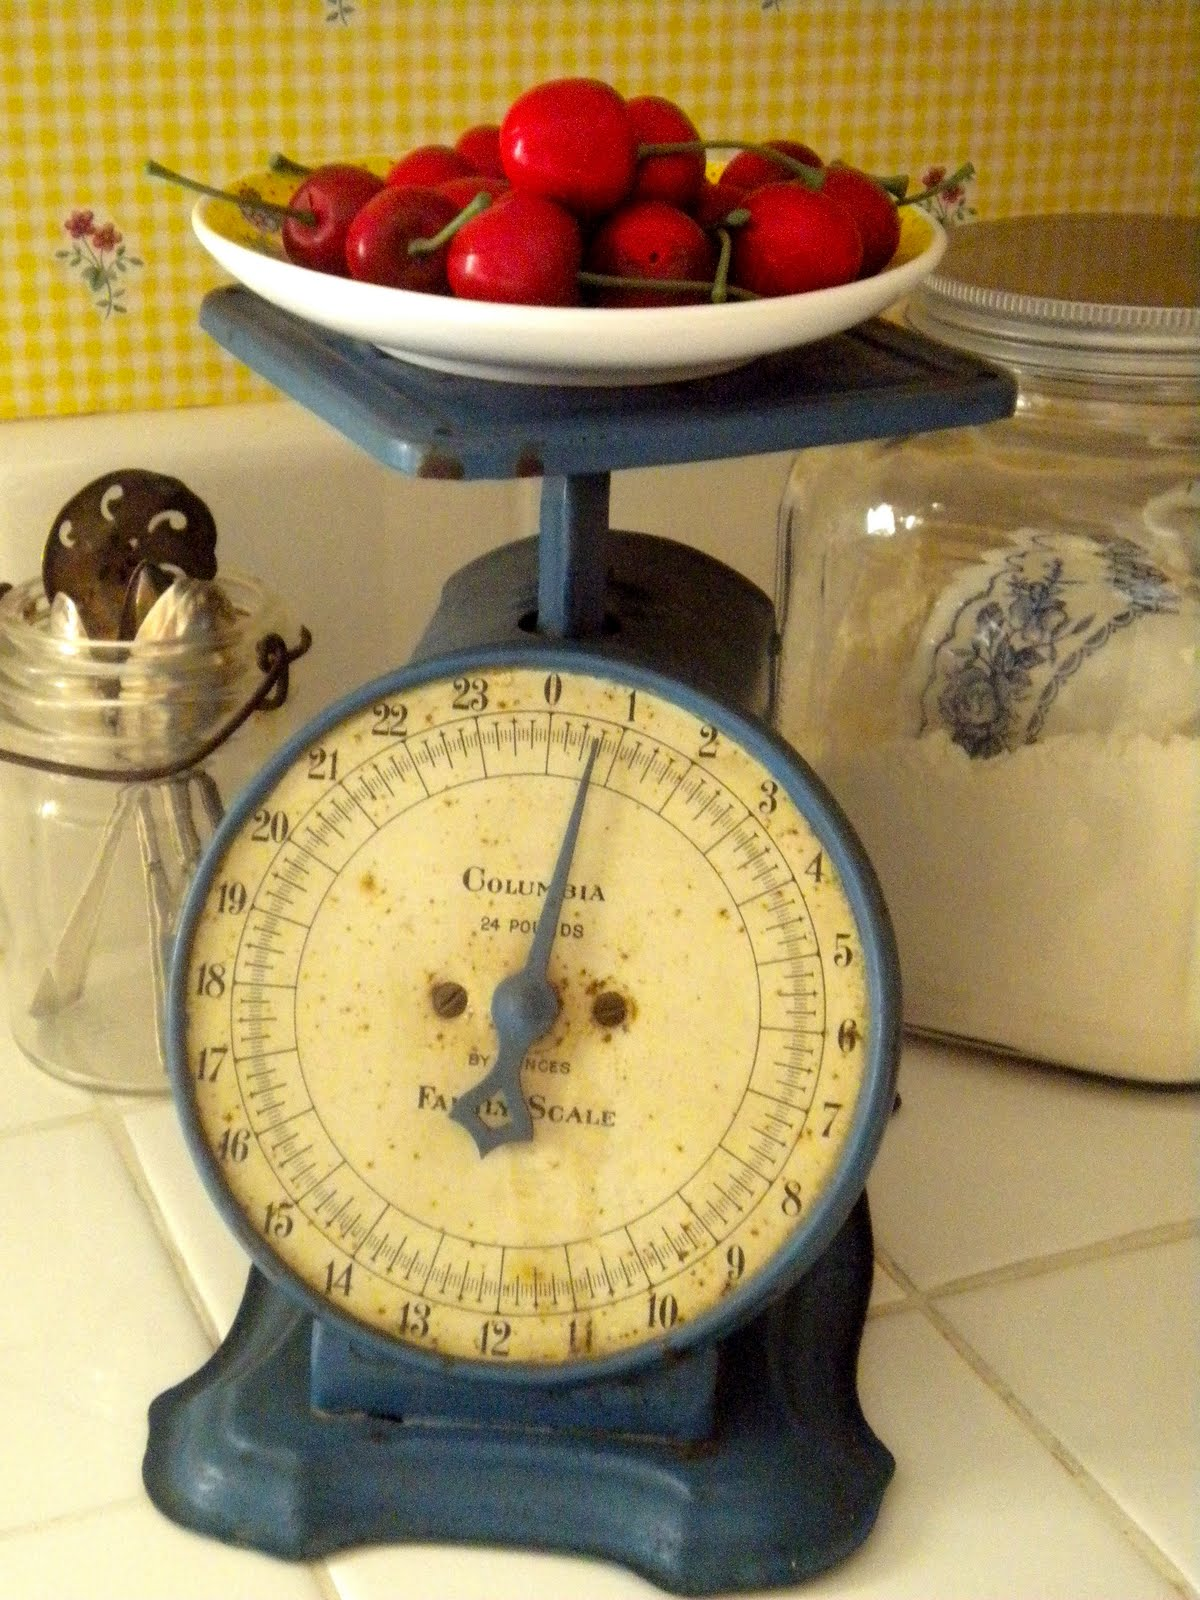 Cottage Blessings Vintage Kitchen Scale. Kitchen Art Of Maine. Kitchen Tea Locations Sydney. Kitchen Corner Glass Cabinet. B&q Kitchen Shelf Liner. Kitchen Redo Planner. Vtech Shopping Cart Kitchen. Country Kitchen Facebook. Awesome Kitchen Tables